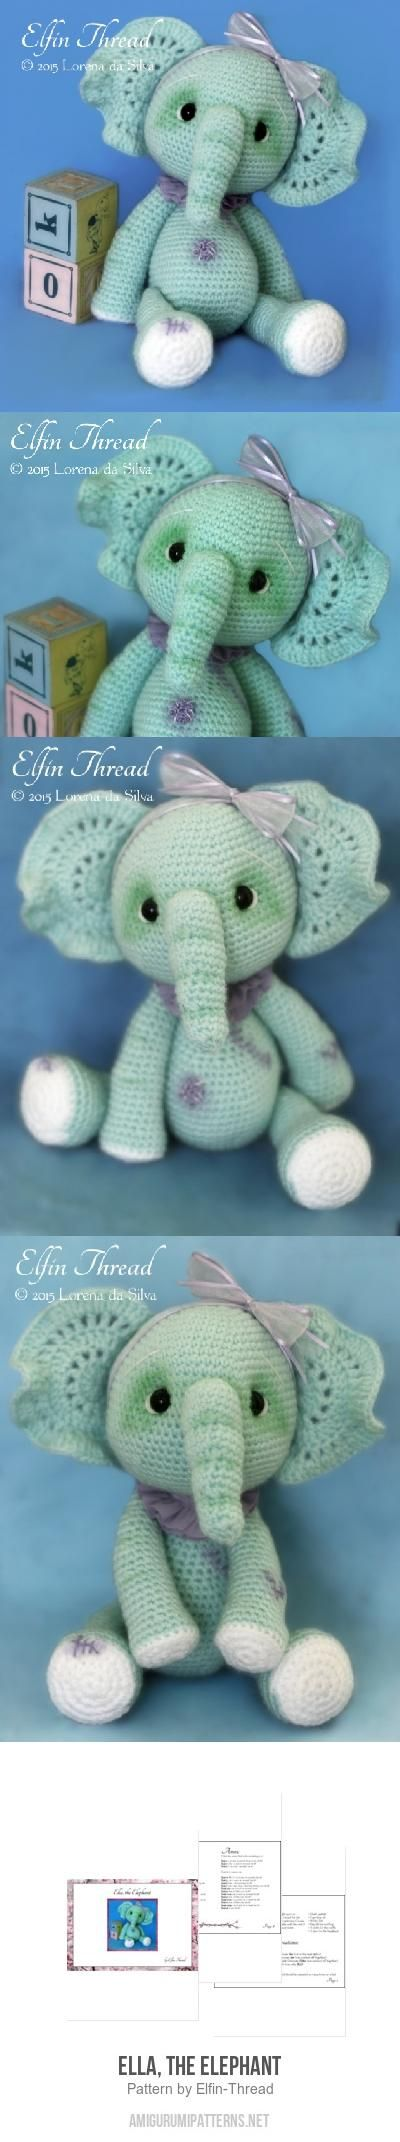 Ella, the Elephant amigurumi pattern